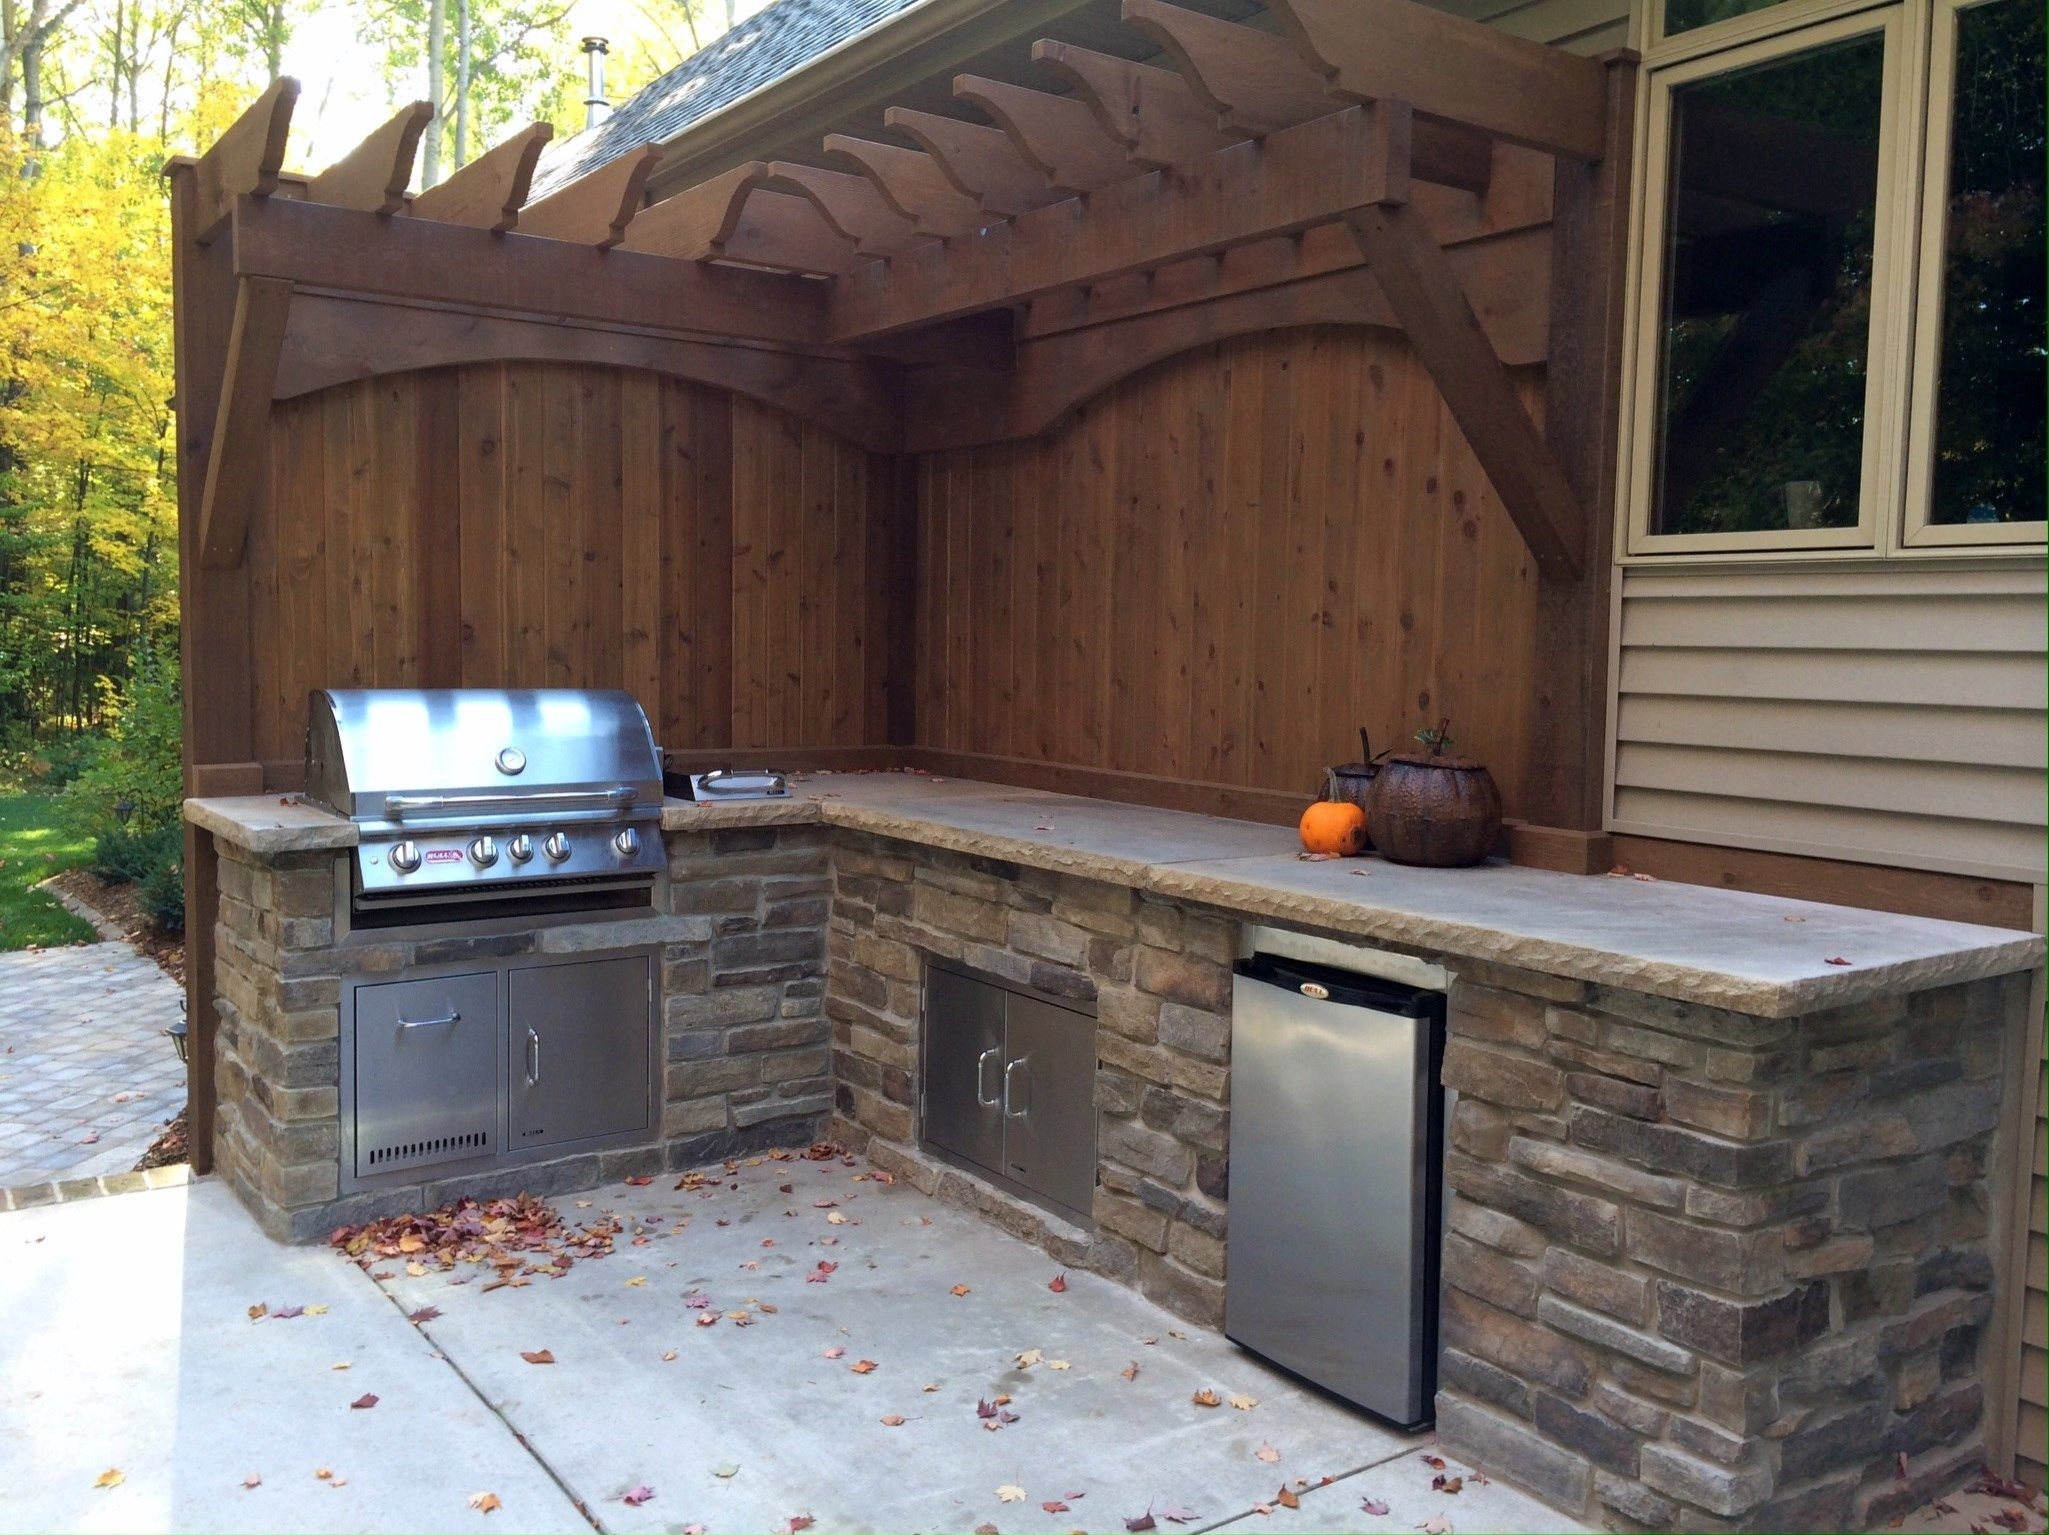 Outdoor Natural Gas Grilling Station With Side Burner And Refridgerator Dream Patio Outdoor Grill Natural Gas Grill